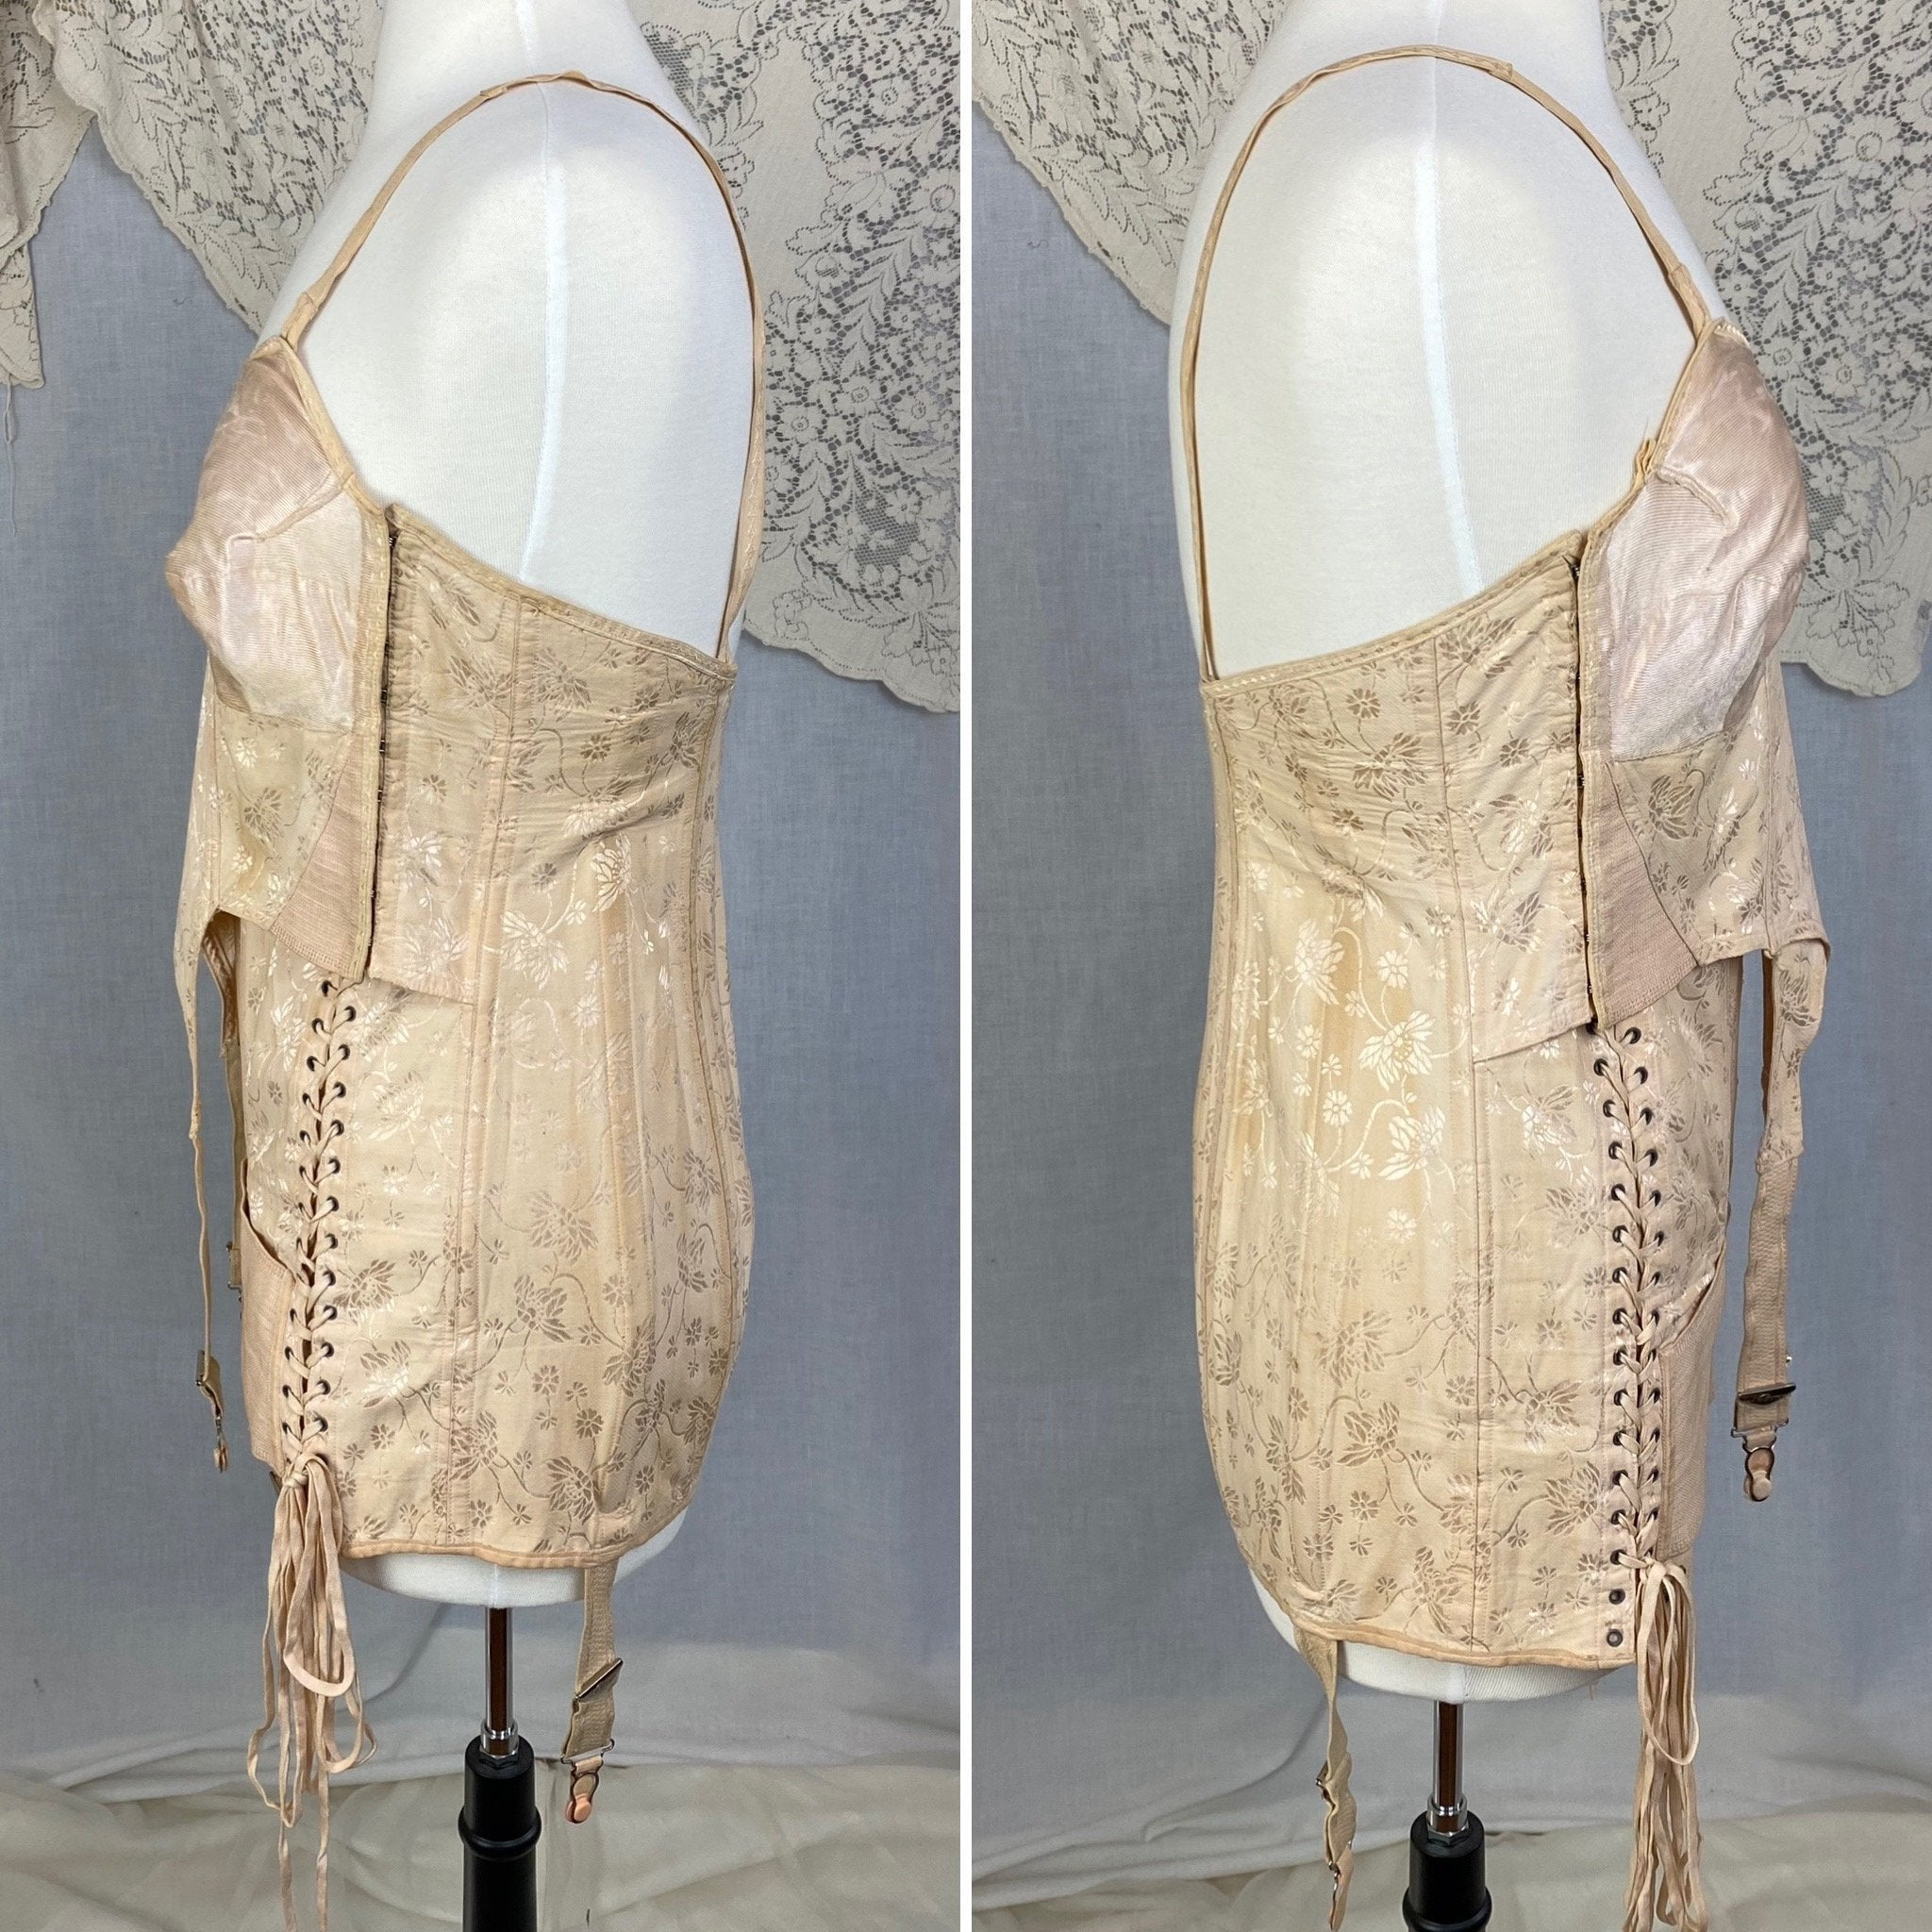 Vintage 1920-1930's All in One Girdle | Nude Rayon Satin Damask with Double Corset Lacing | Size 38-40, LG, XL | Nu-Bone - Daggers & Dames